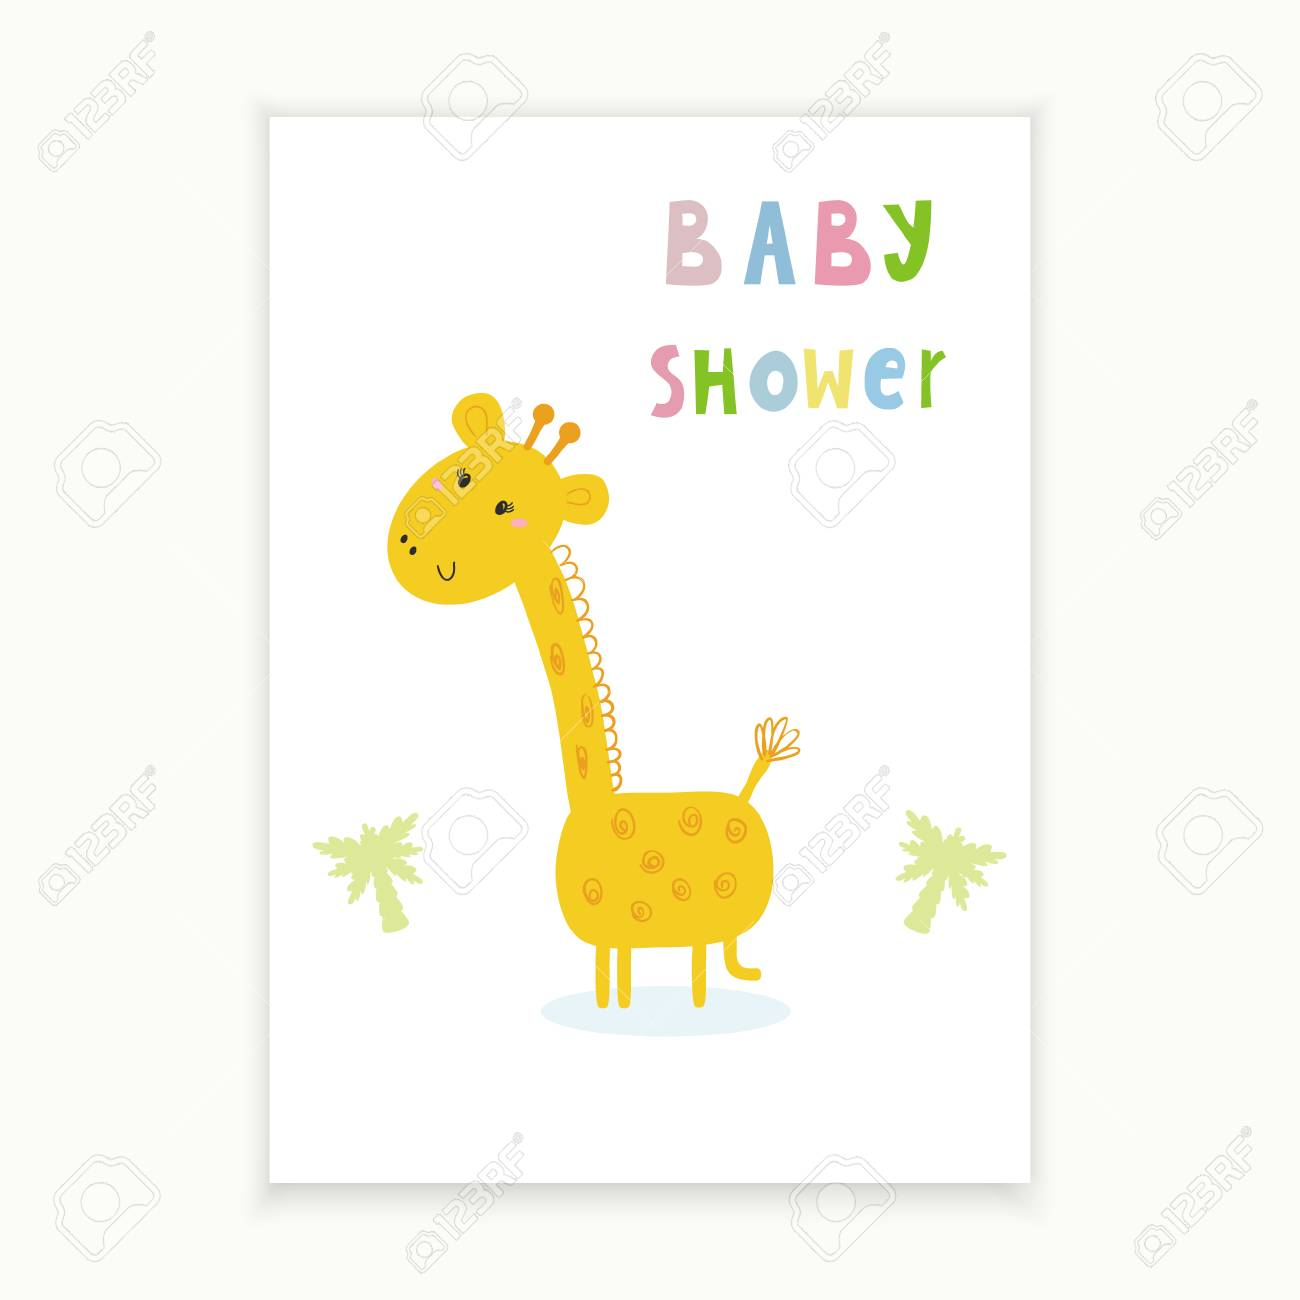 graphic regarding Printable Baby Shower Card referred to as Child Shower card design and style Printable template